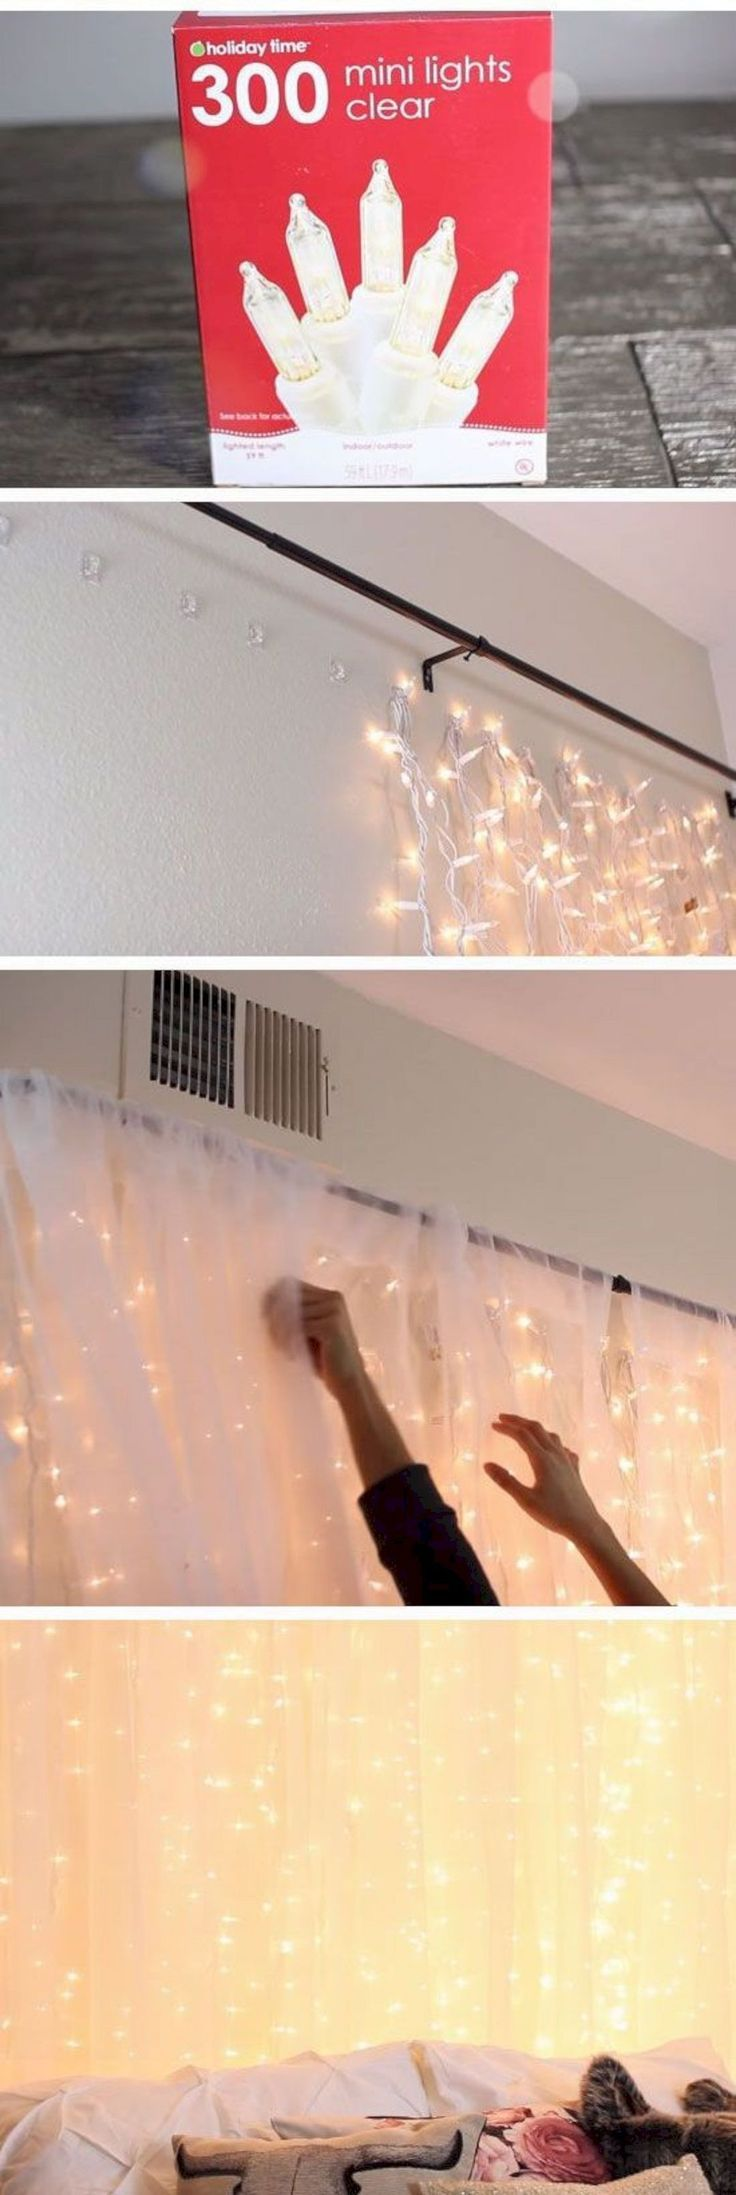 17 Top DIY Home Decor for Small Apartments www.futuristarchi … #decor #futuristarchi #small #apartments